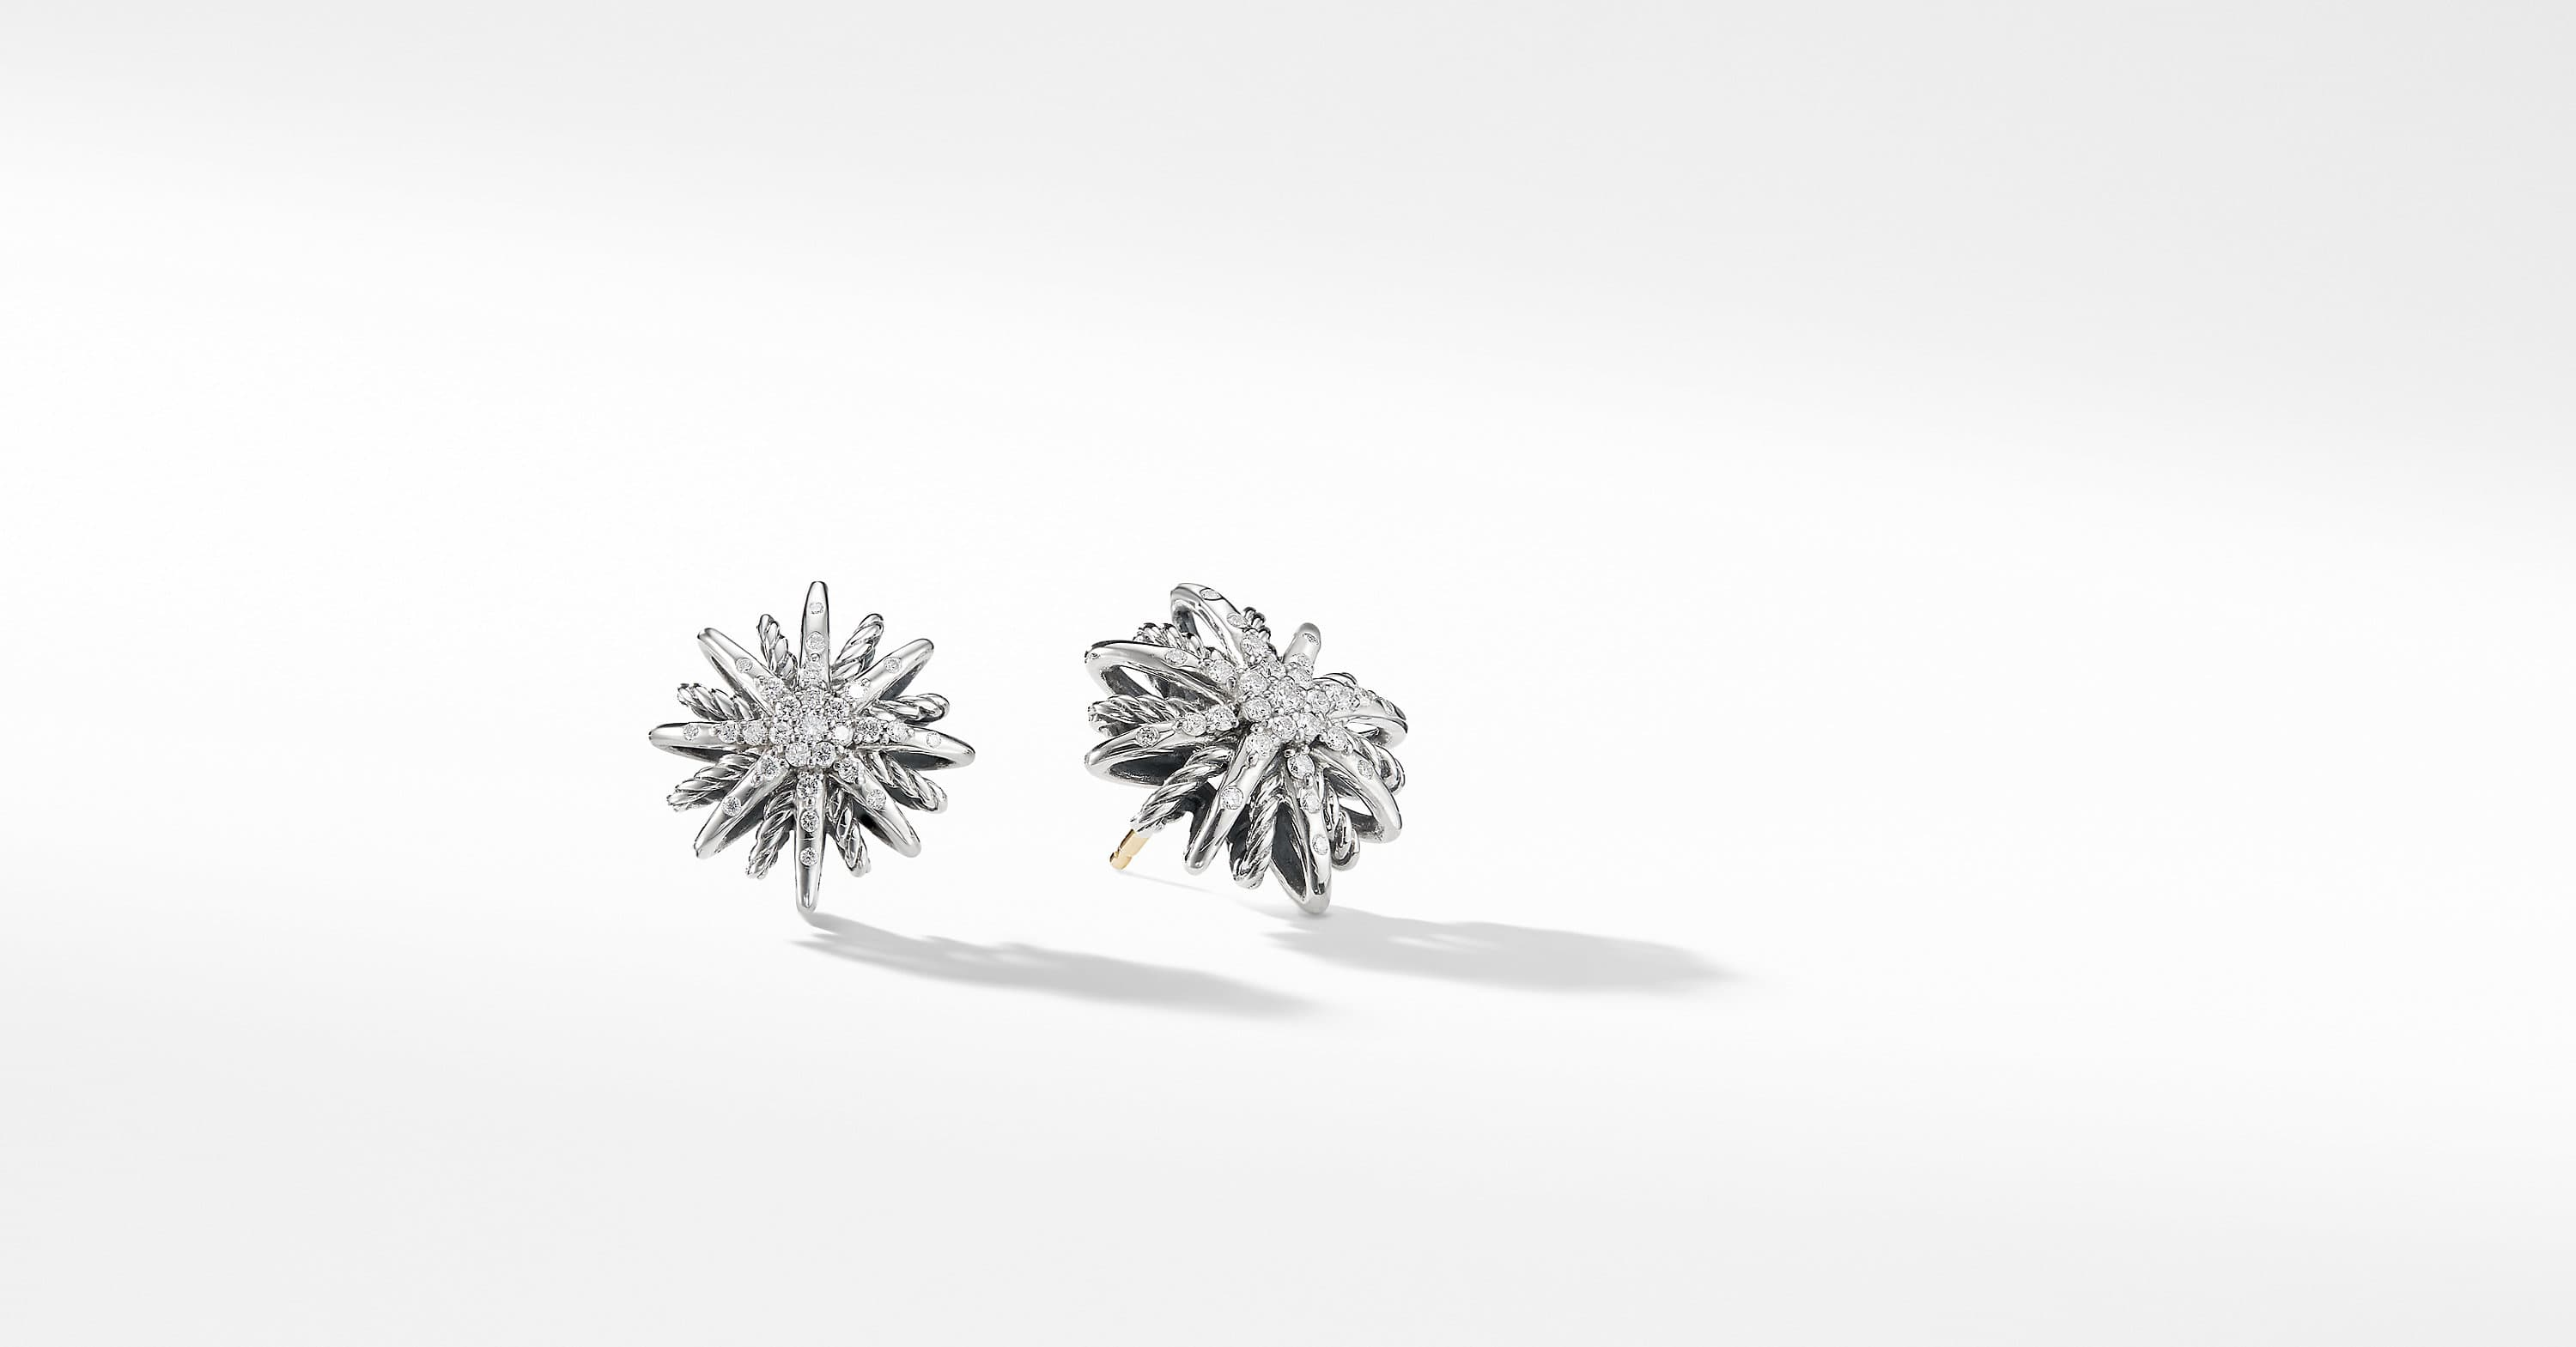 Starburst Small Earrings with Diamonds, 16mm